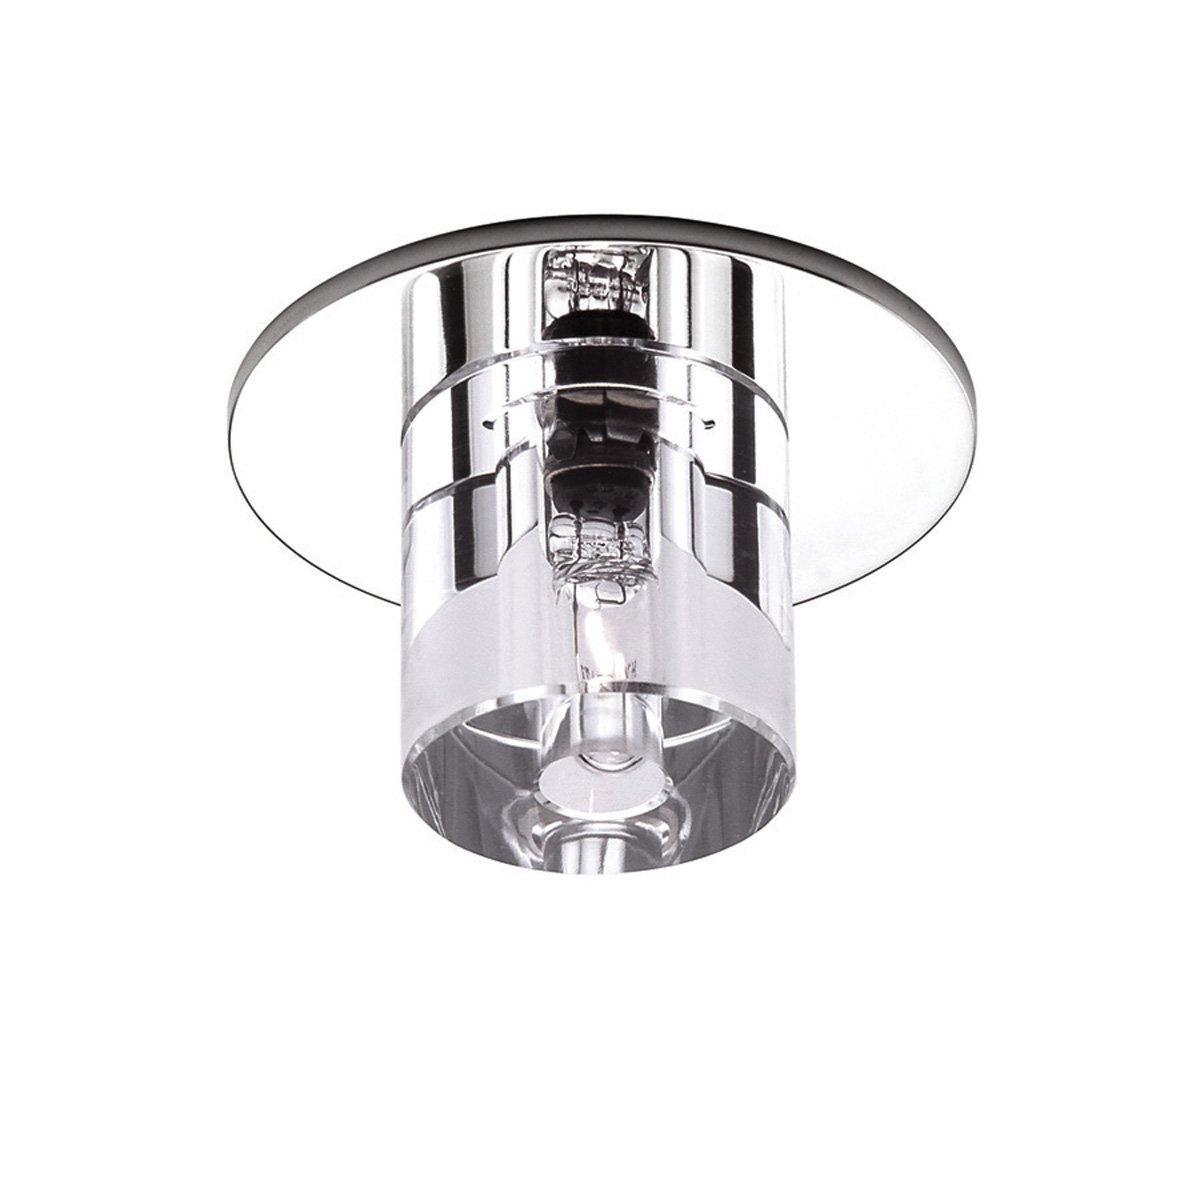 wac lighting drg356cl beauty spot crystal cylinder clear lampshades amazoncom - Wac Lighting